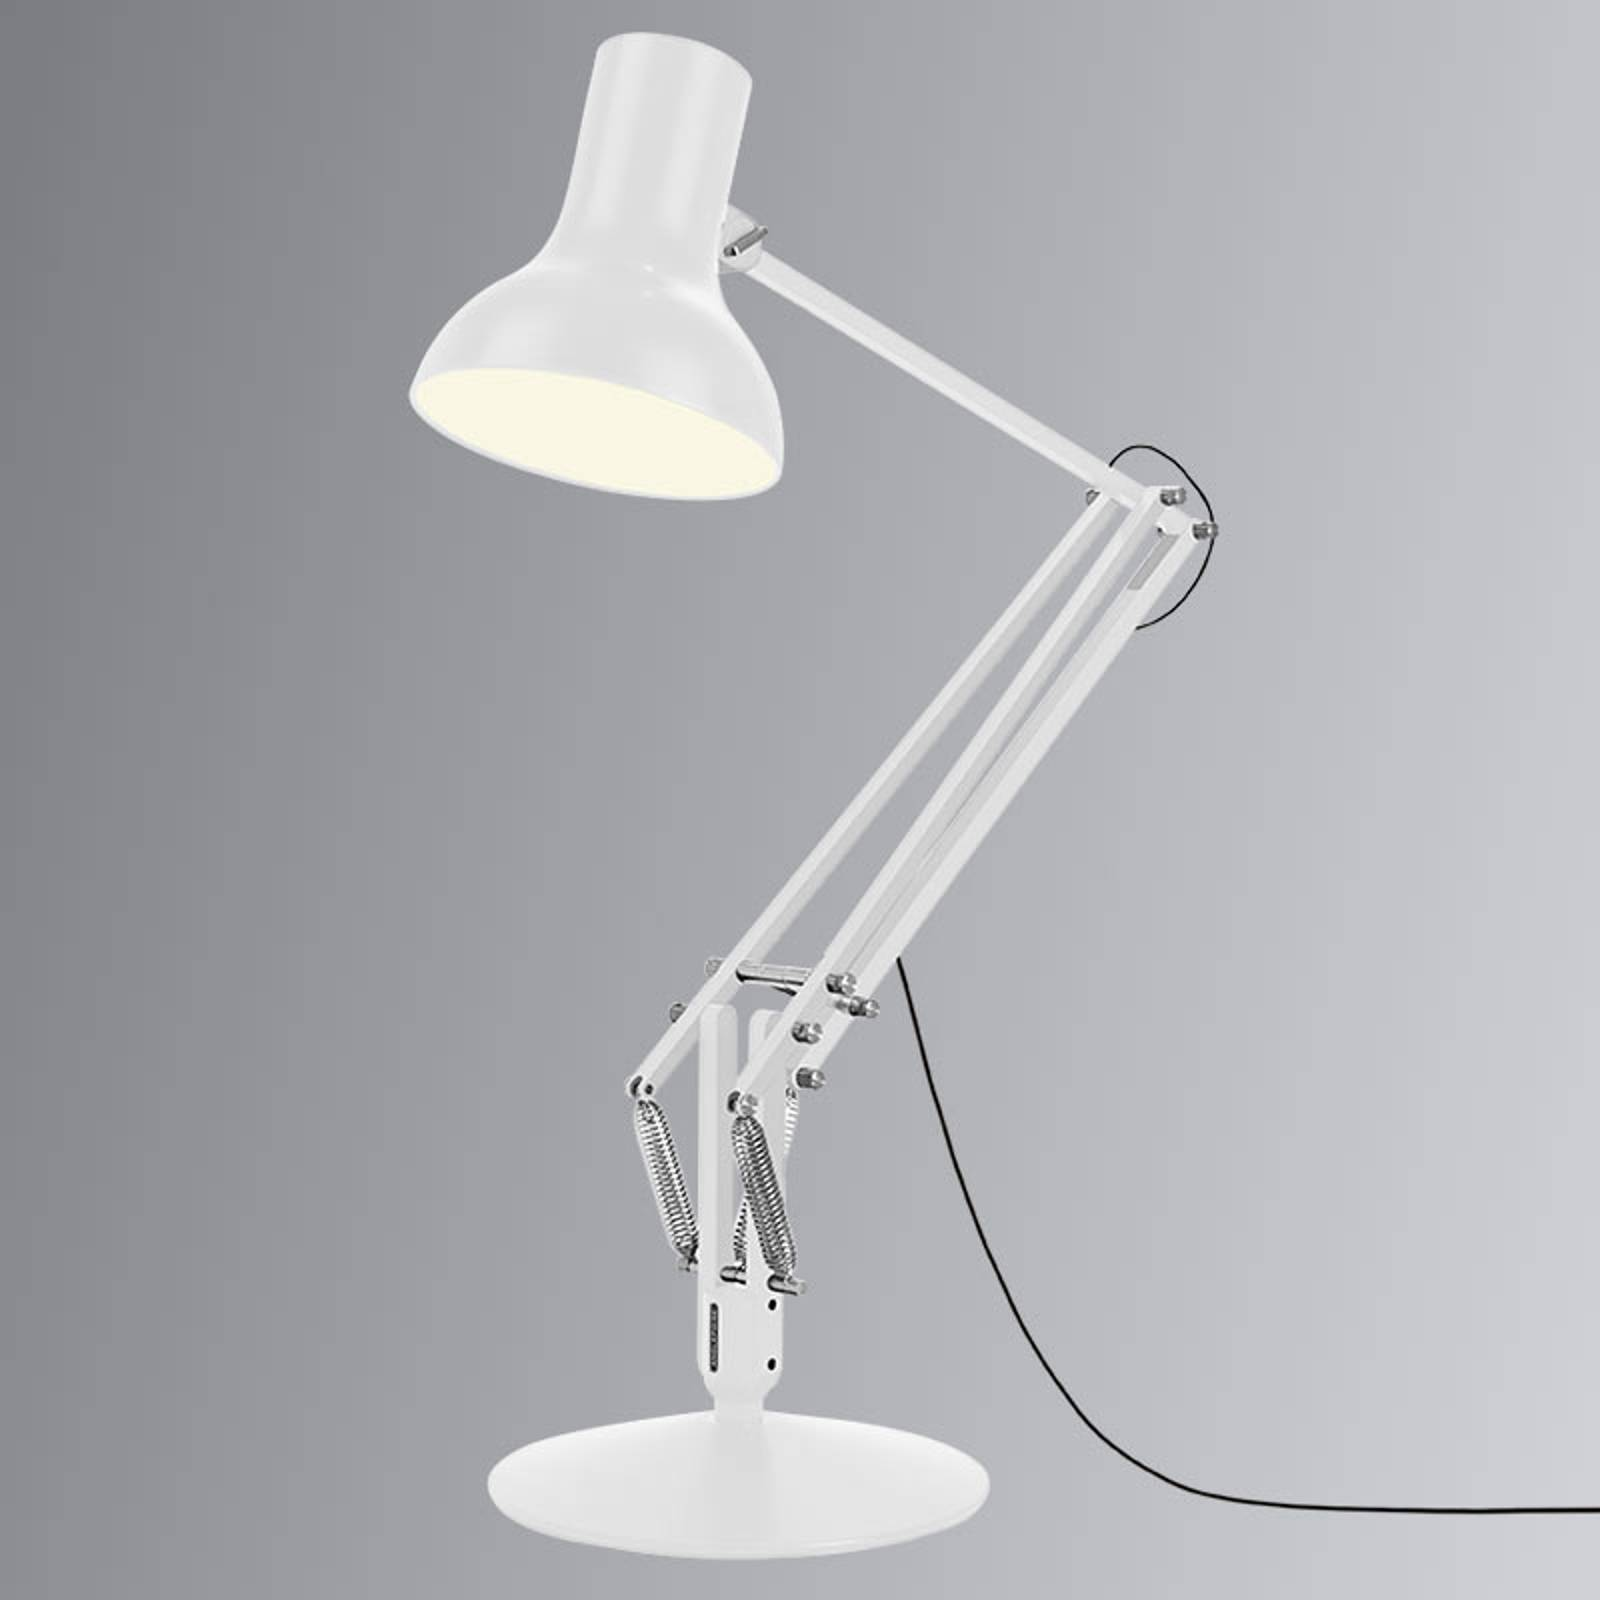 Anglepoise Type 75 Giant Stehleuchte weiß von Anglepoise